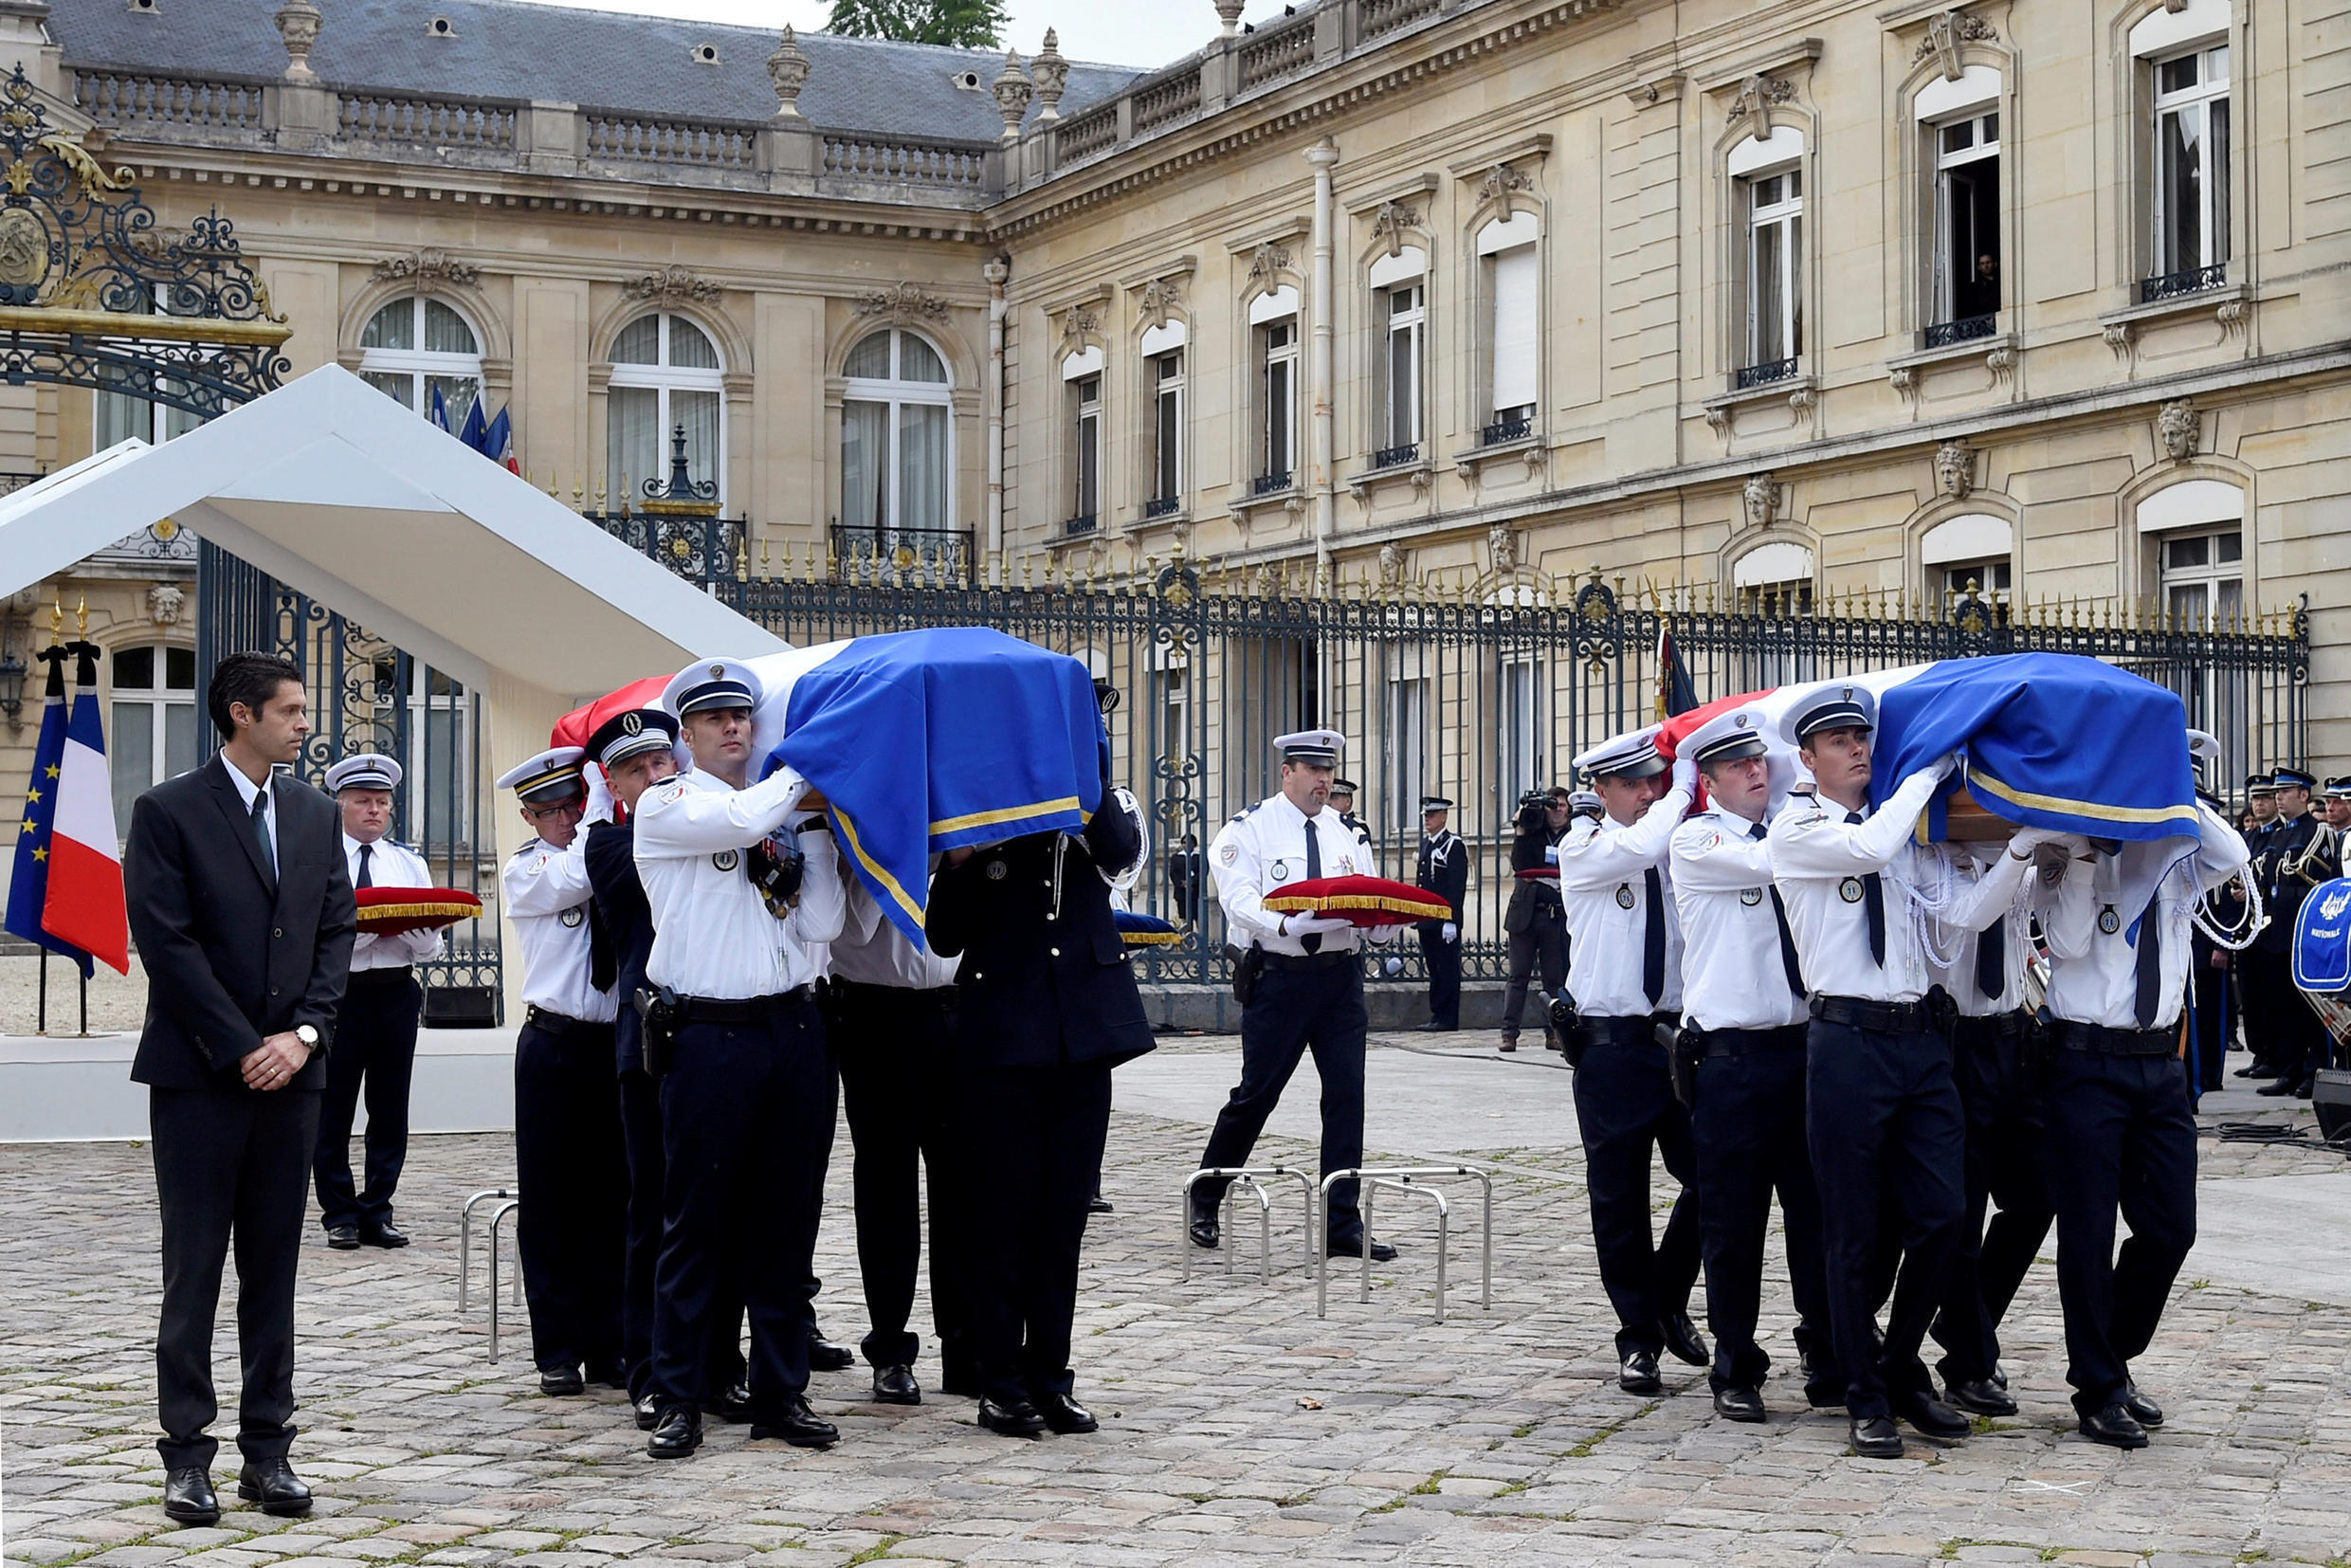 Police carry the flag-draped coffins honouring the police couple, French police commander Jean-Baptiste Salvaing and his companion, administrative agent Jessica Schneider, during a memorial ceremony in Versailles, near Paris, France, June 17, 2016.